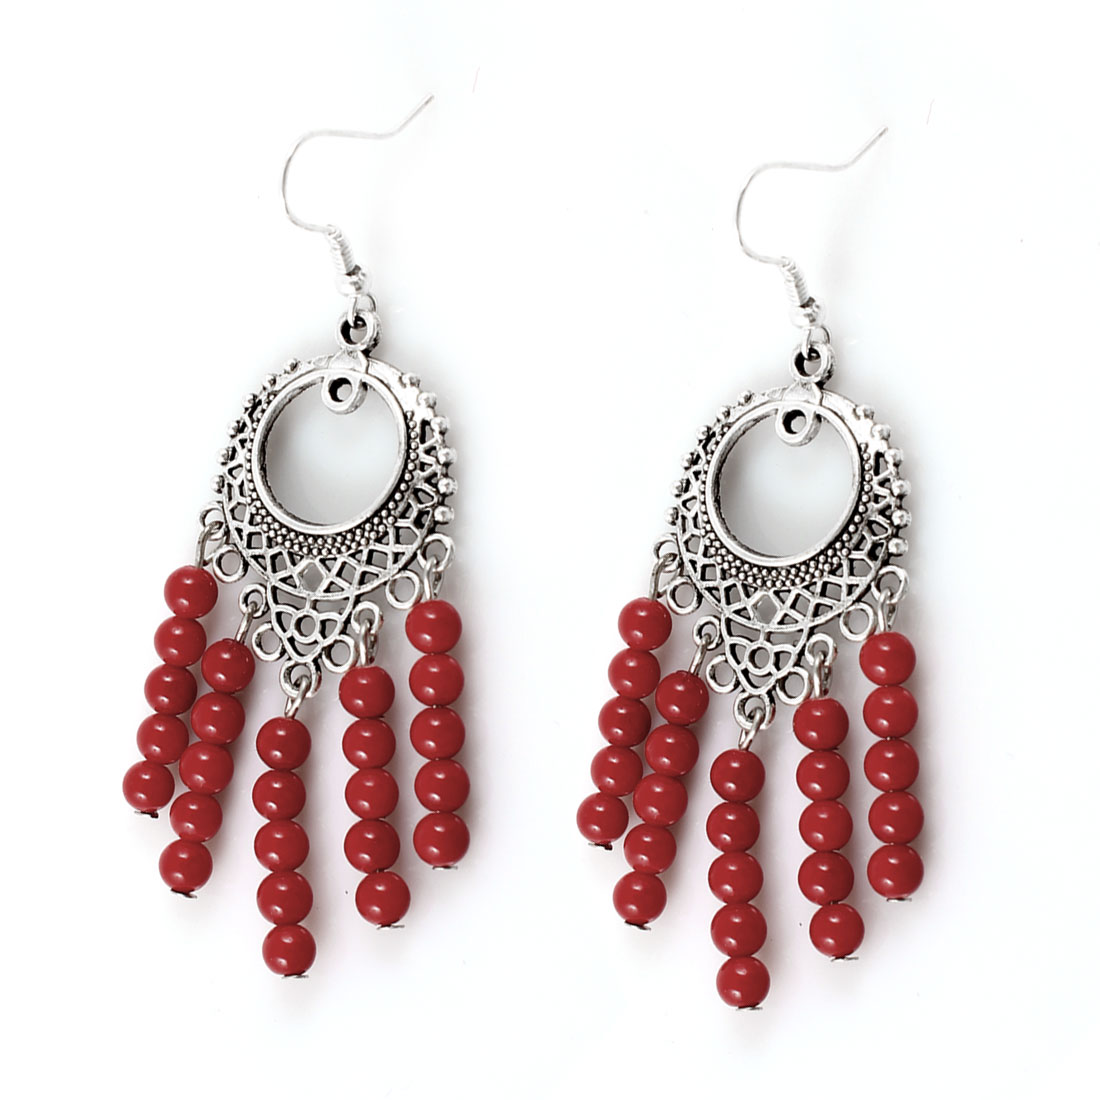 Lady Red Plastic Round Beads Detail Fish Hook Earrings Silver Tone Pair